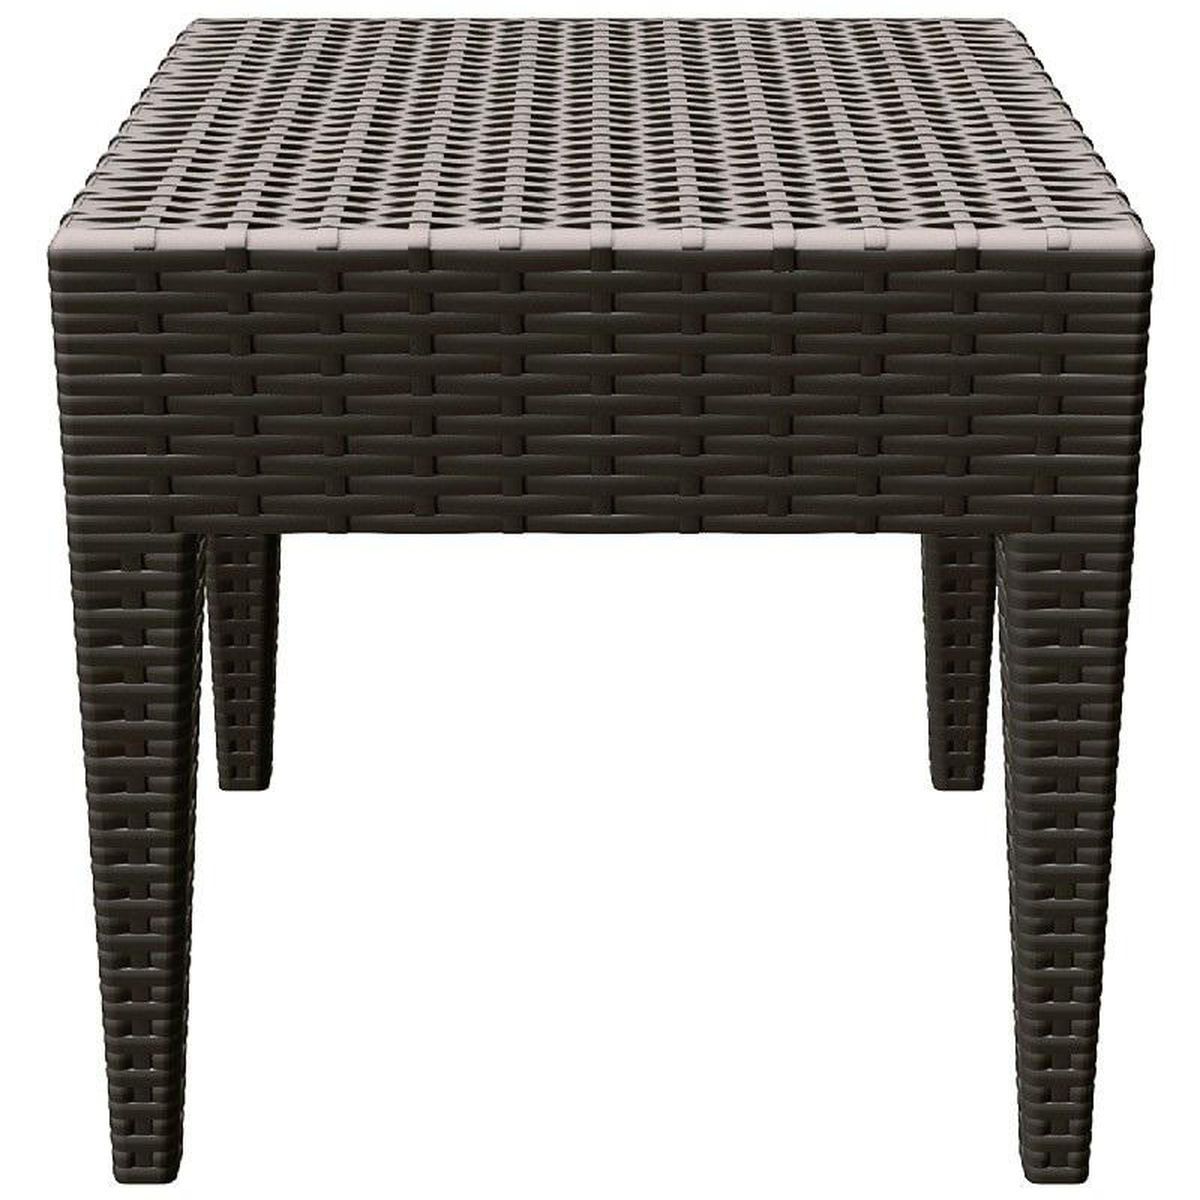 brown outdoor side table bizchair compamia cmp gray our miami wickerlook resin square now furniture dining large garden pretty storage boxes ikea with umbrella hole round silver